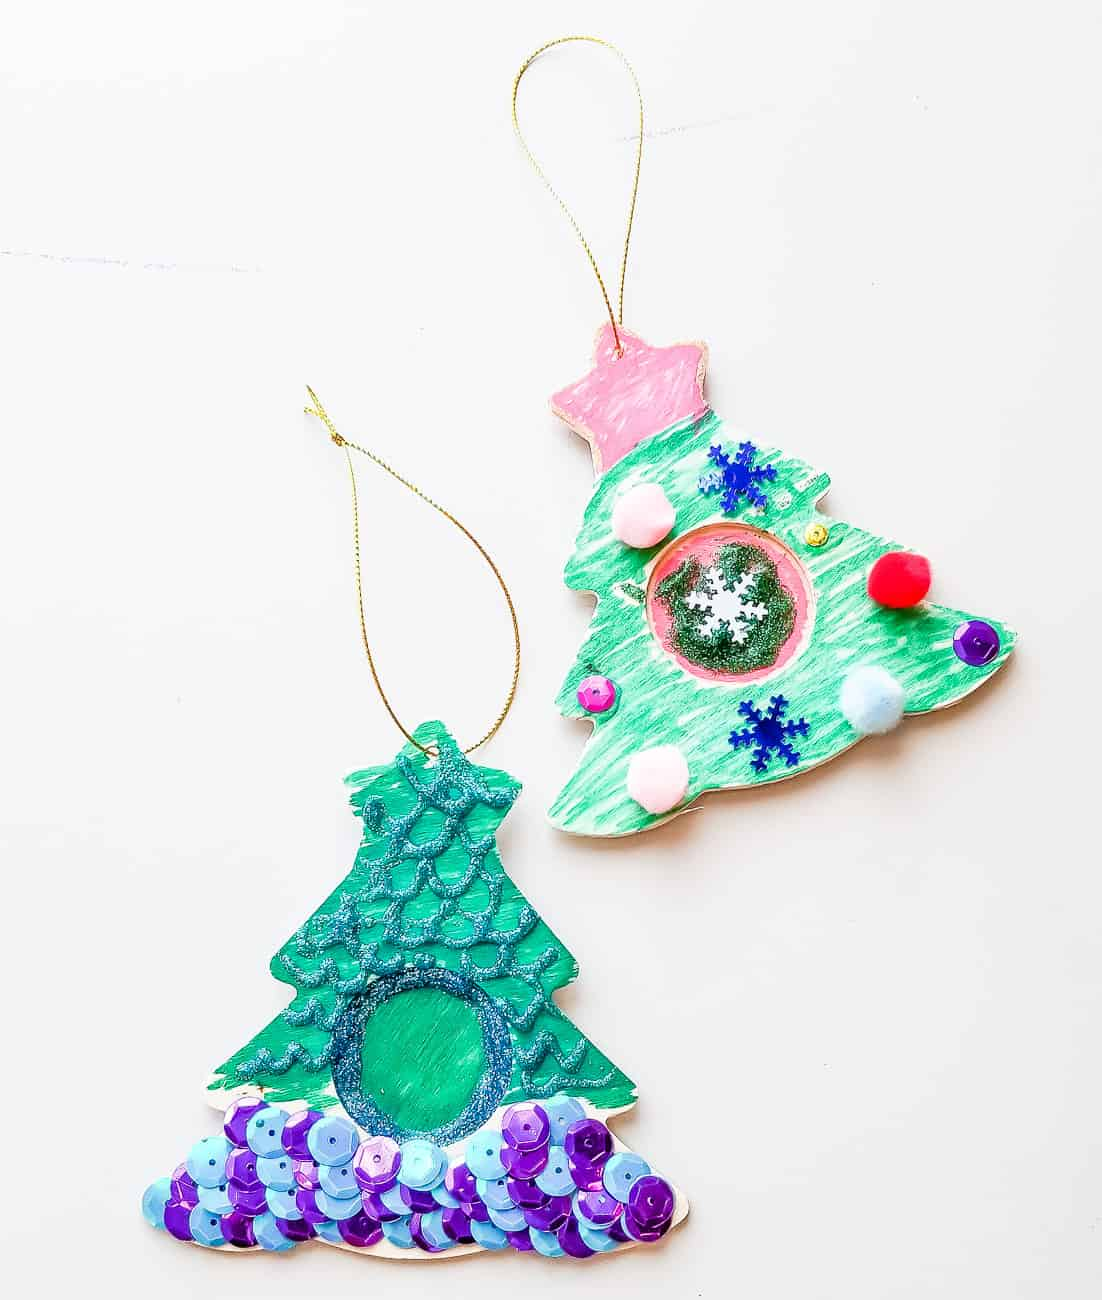 paxton booth diy ornaments-2